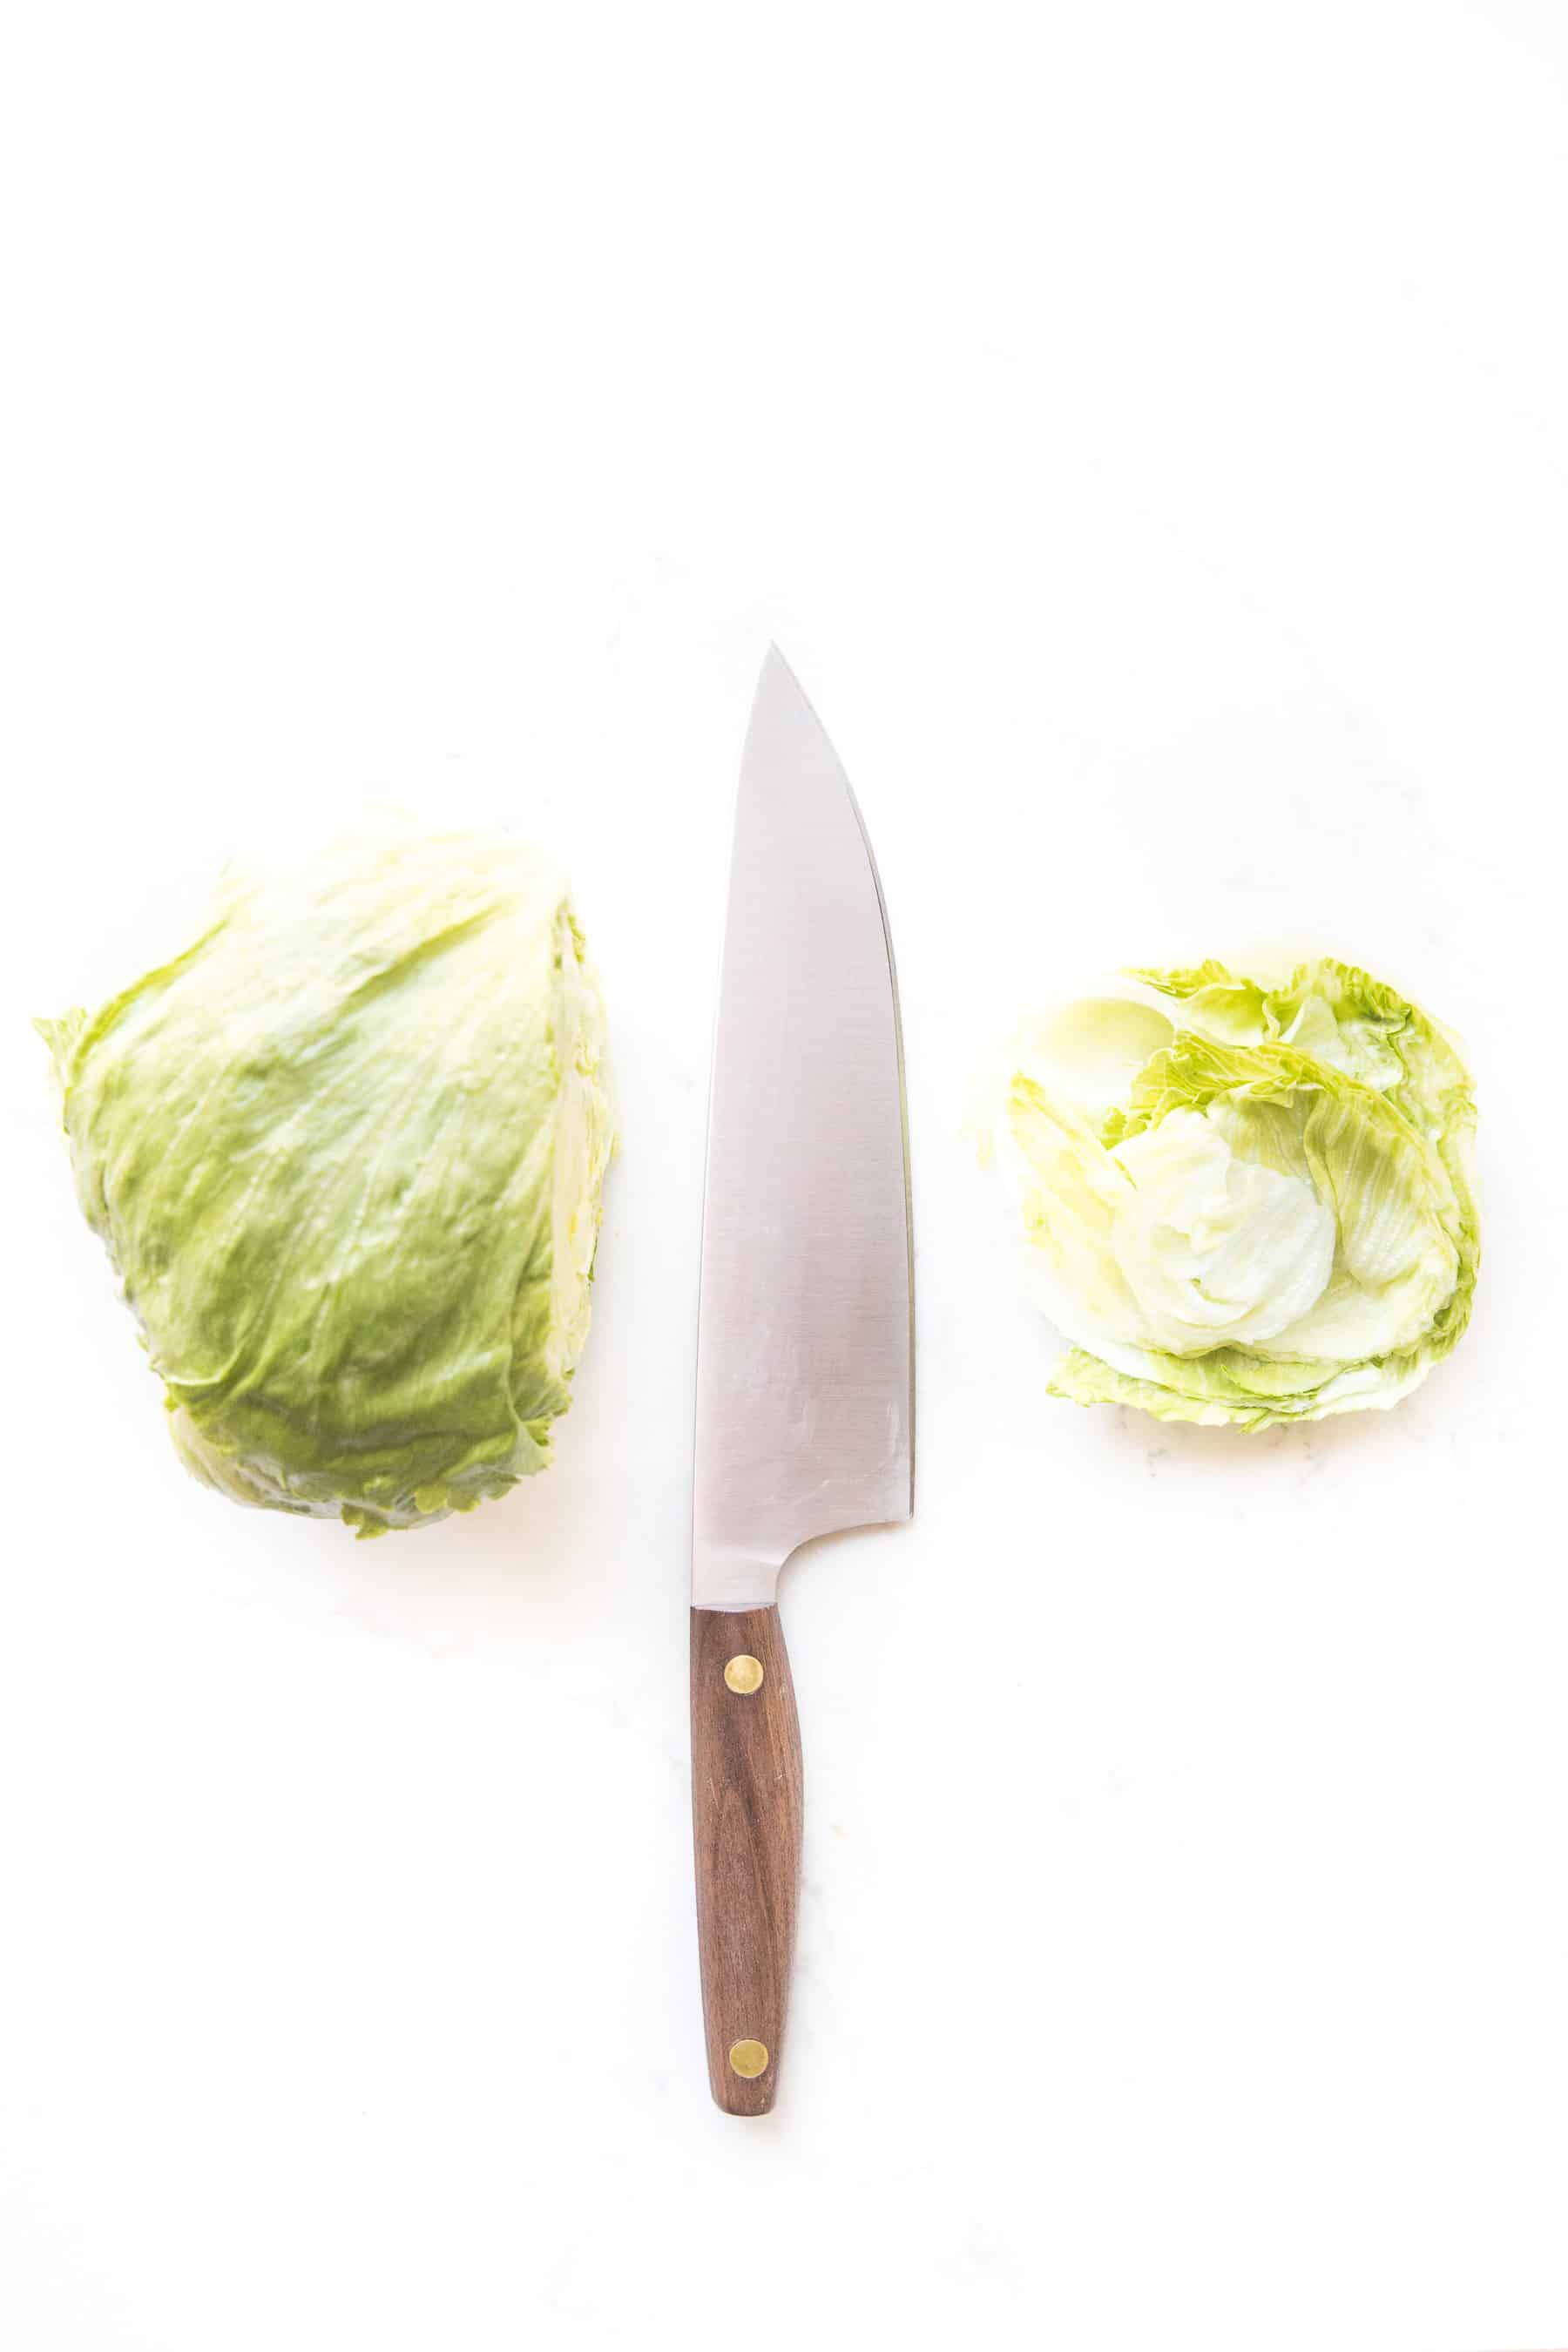 how to cut iceberg lettuce for burgers and sandwich buns